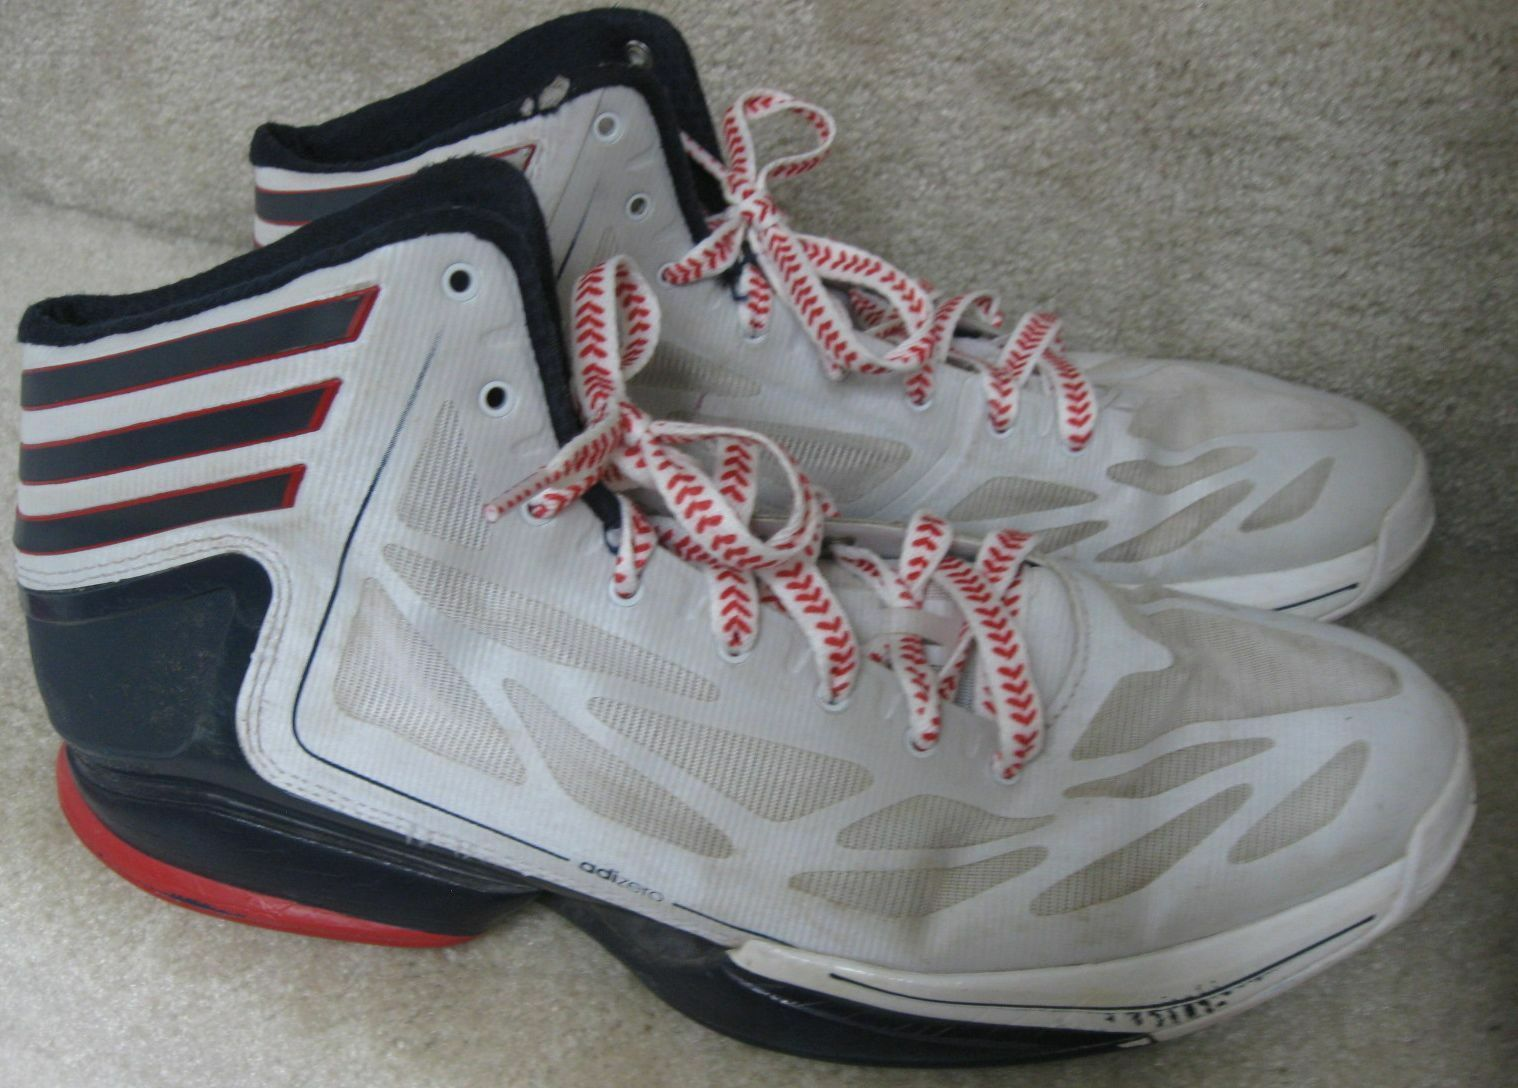 2012 Adidas Adizero Crazy Light 2.0 Shoes G48805 Size 14 Sneakers